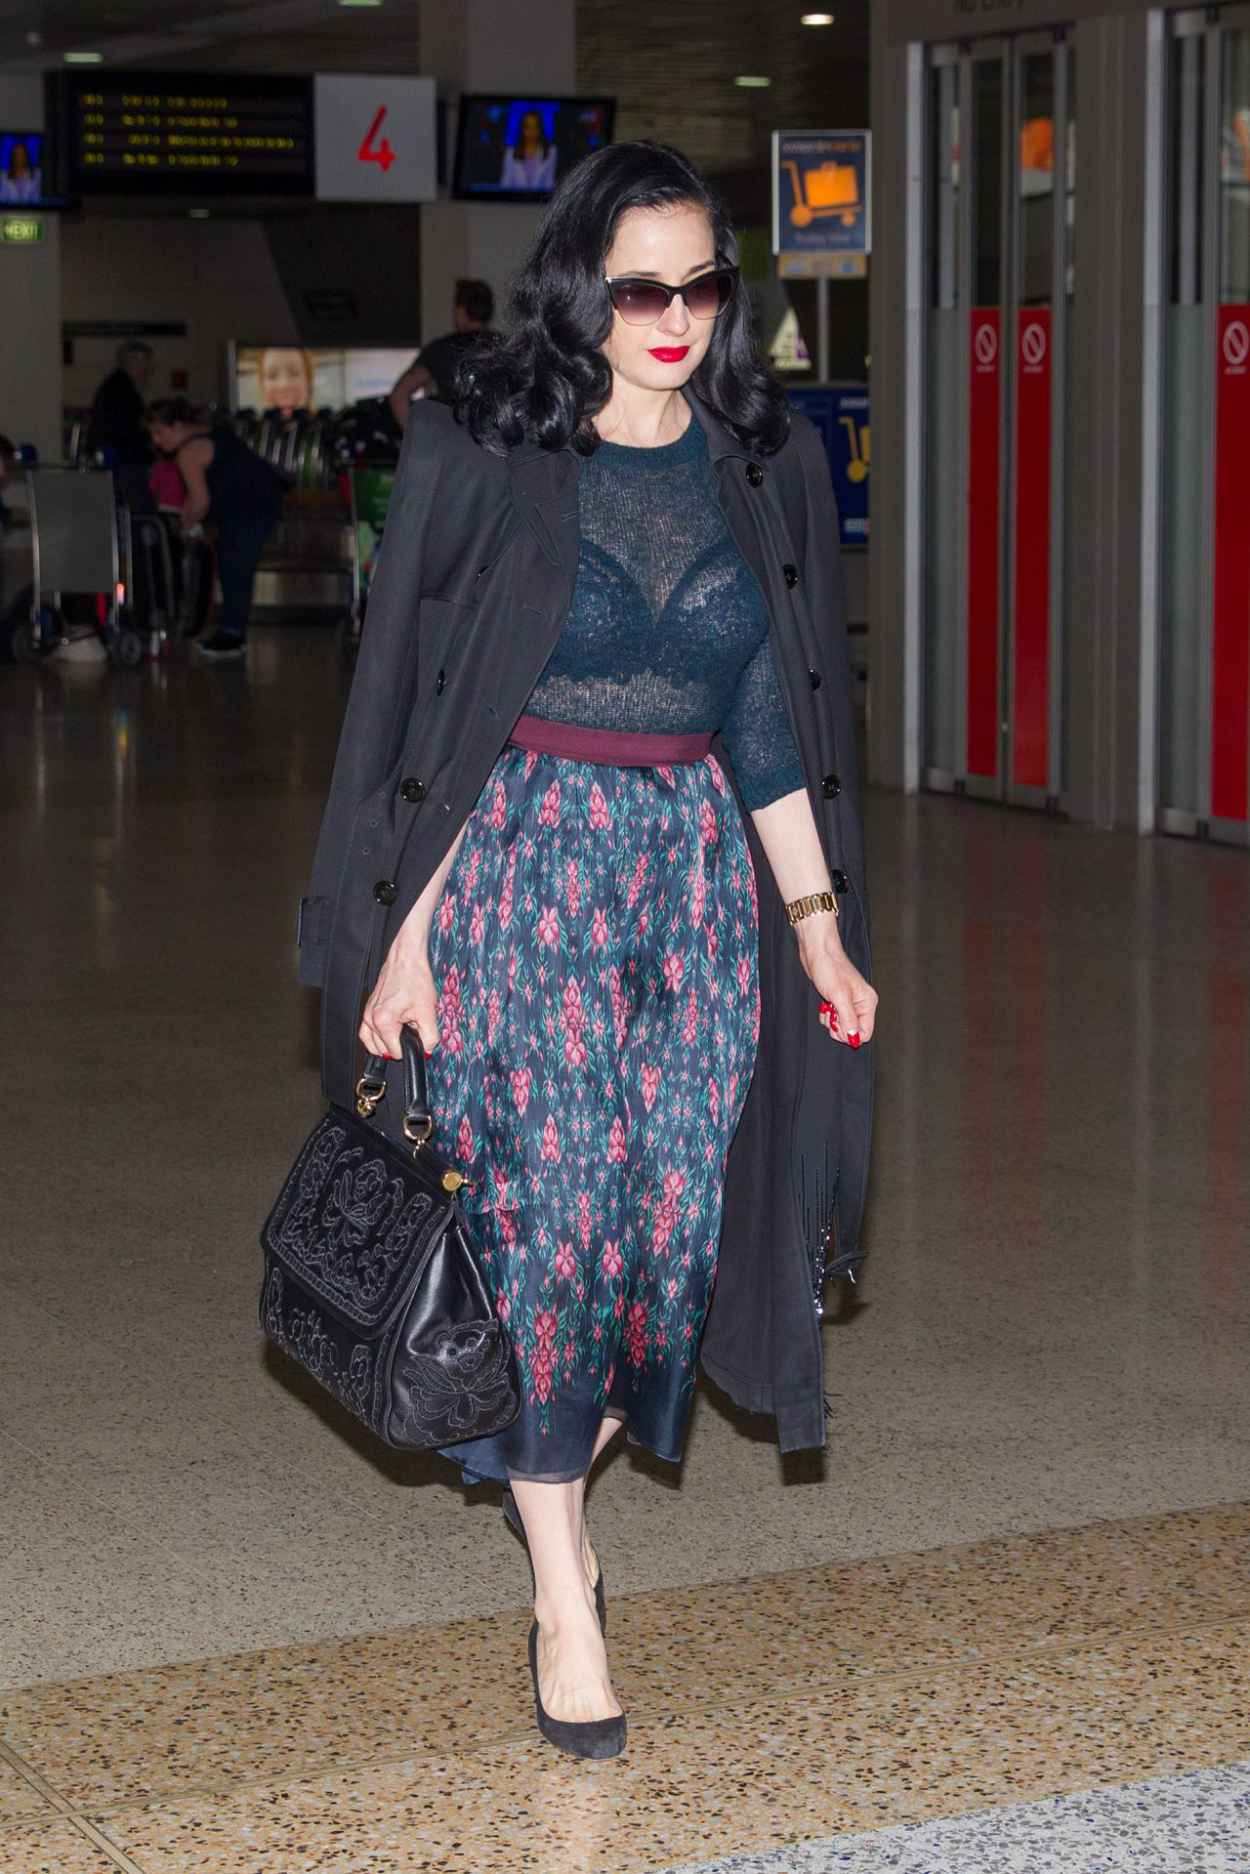 Dita Von Teese - Wearing Blue Top, Blue Skirt and a Large Black Coat - Melbourne Airport-4